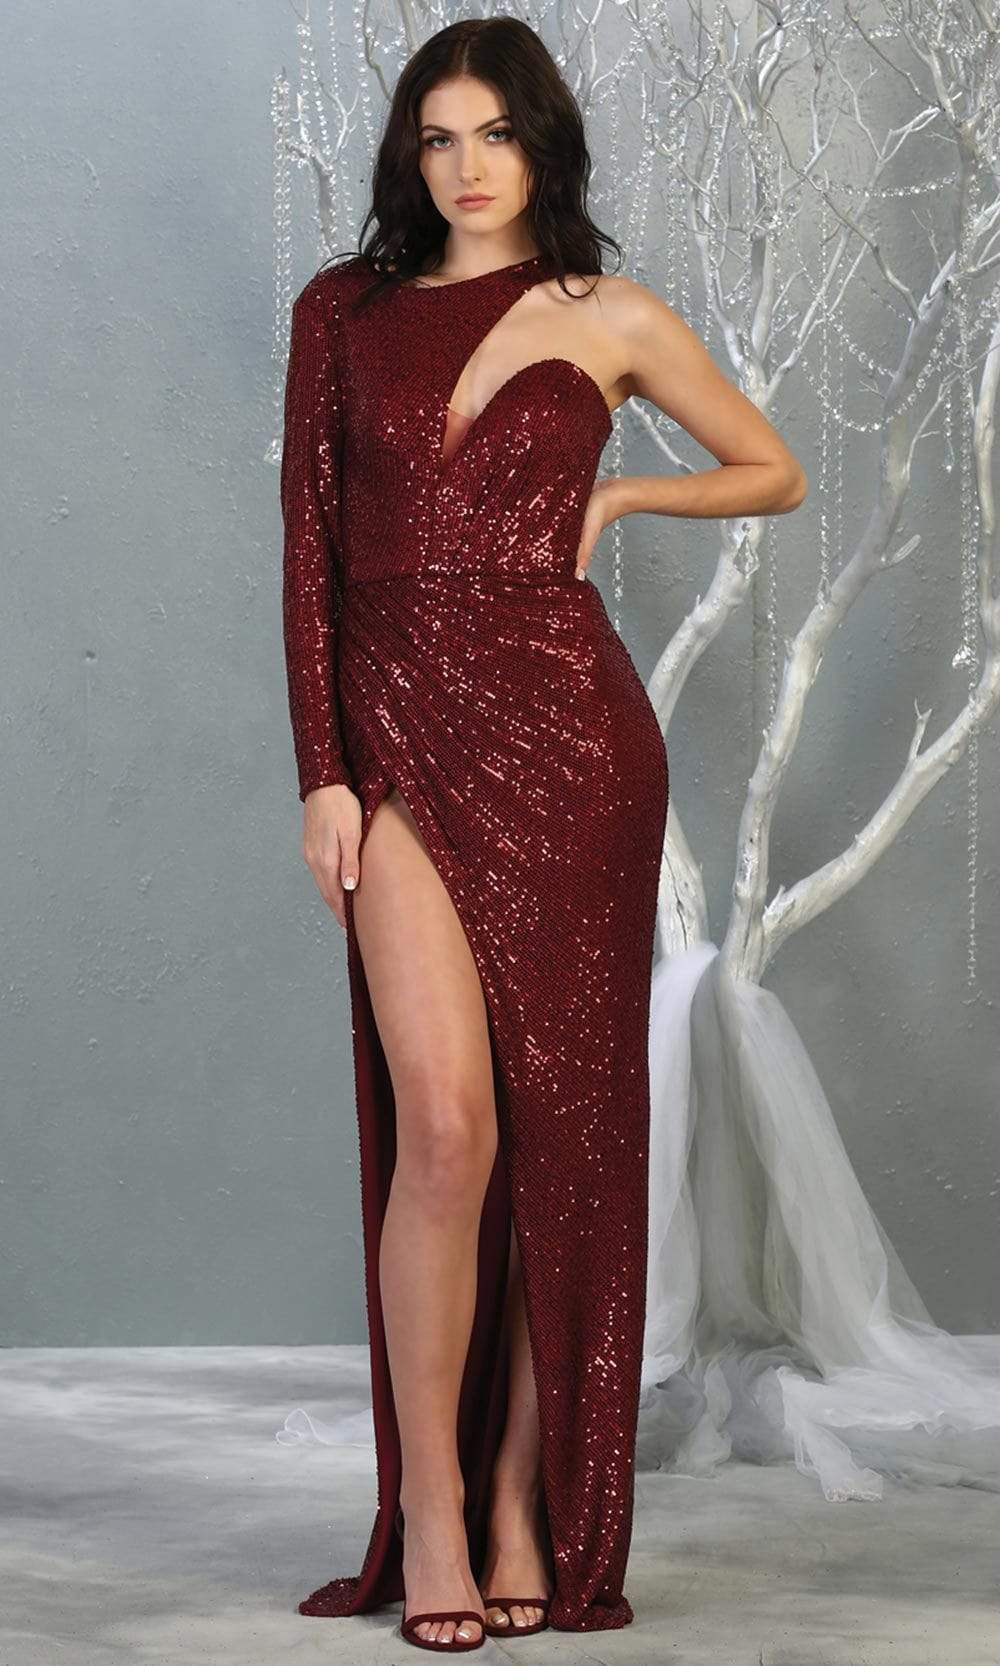 May Queen - RQ7867SC Single Long Sleeve Glittery Slit Gown